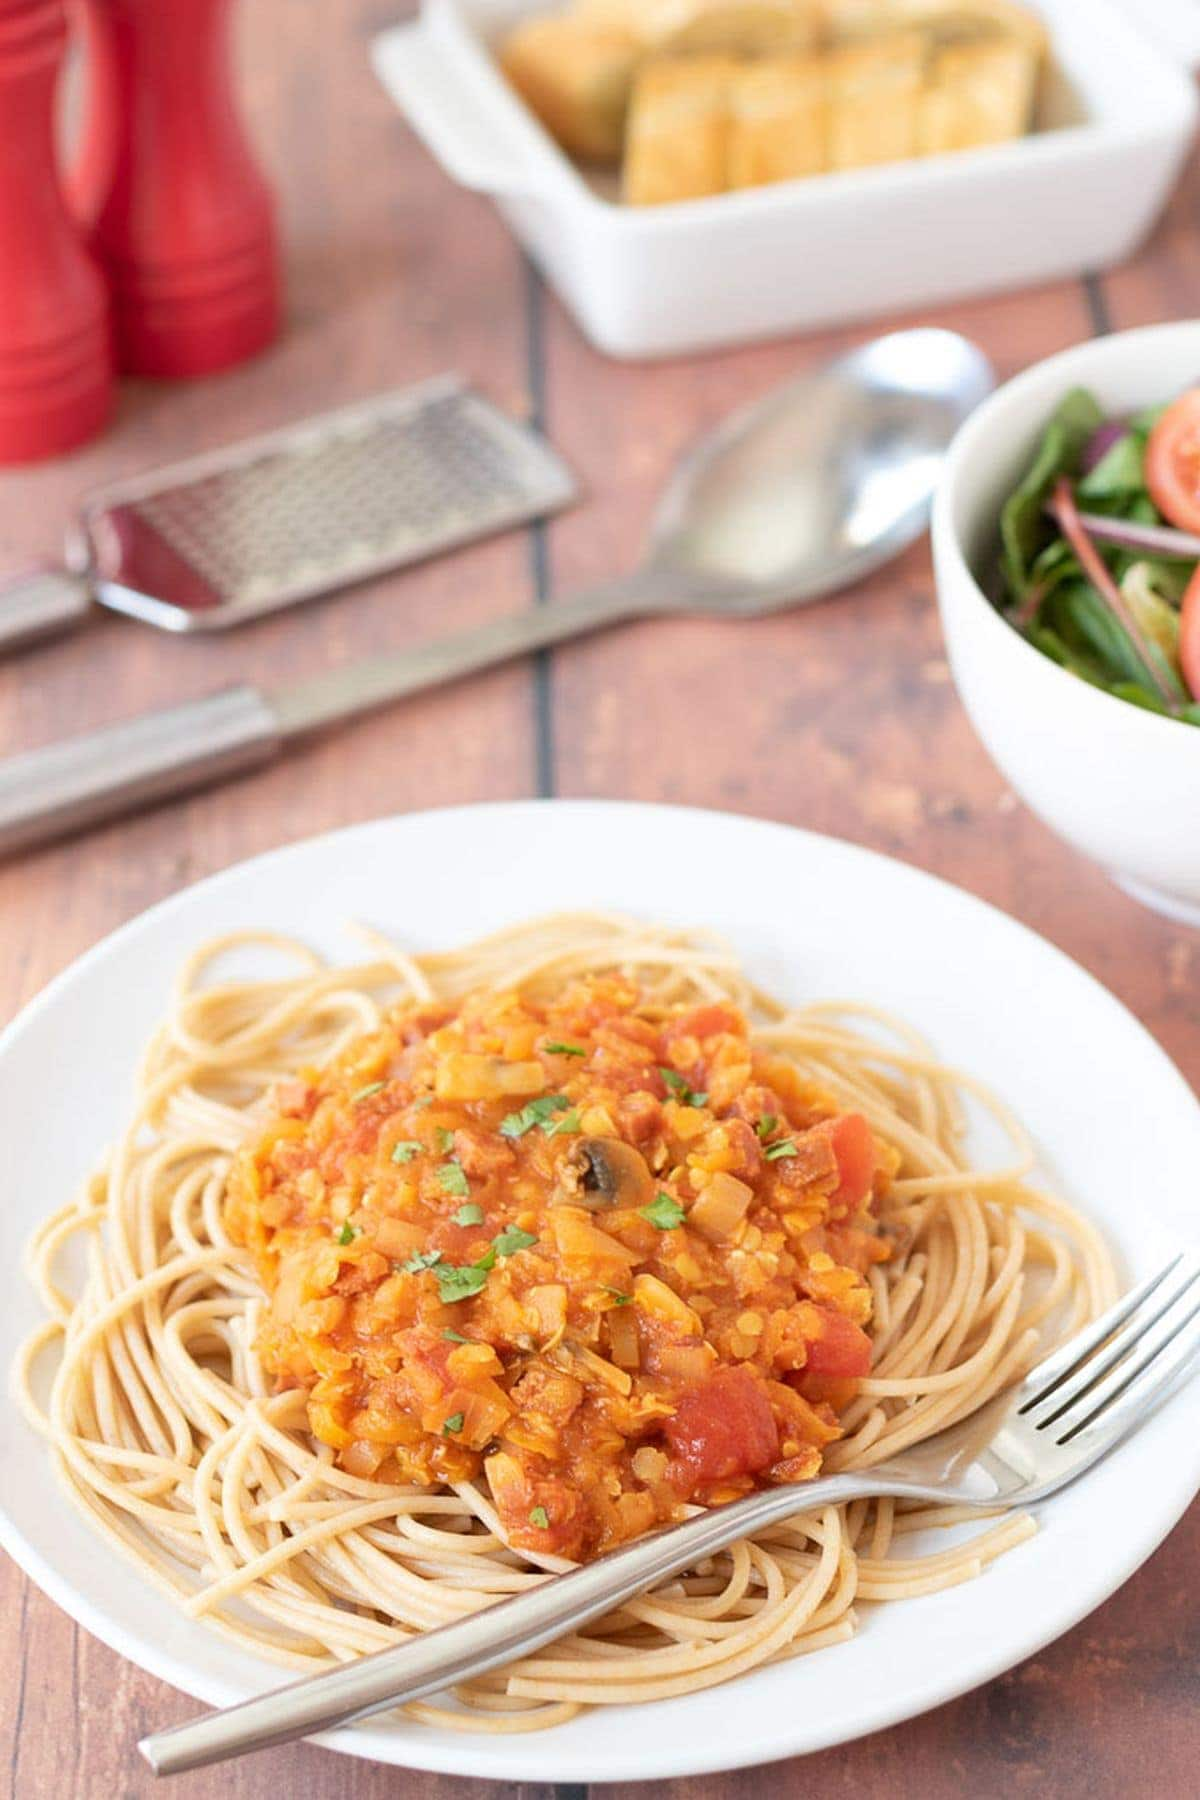 A plate of chorizo lentil bolognese served on a bed of spaghetti. Grater, serving spoon, salt and pepper, garlic bread and a side salad in the background.